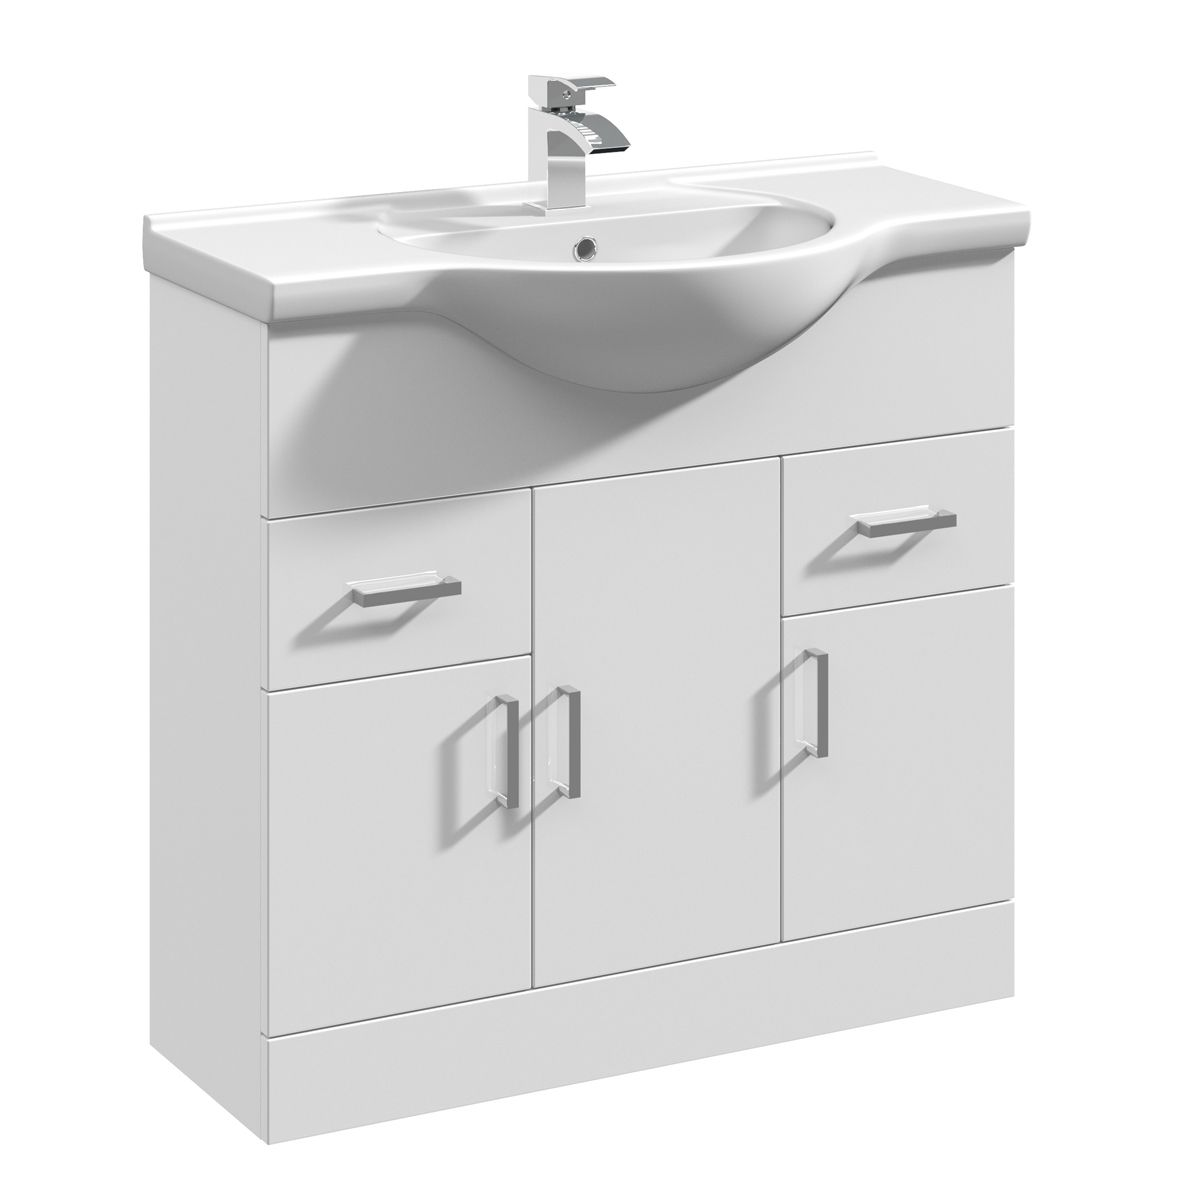 Nuie High Gloss White Vanity Unit 850mm